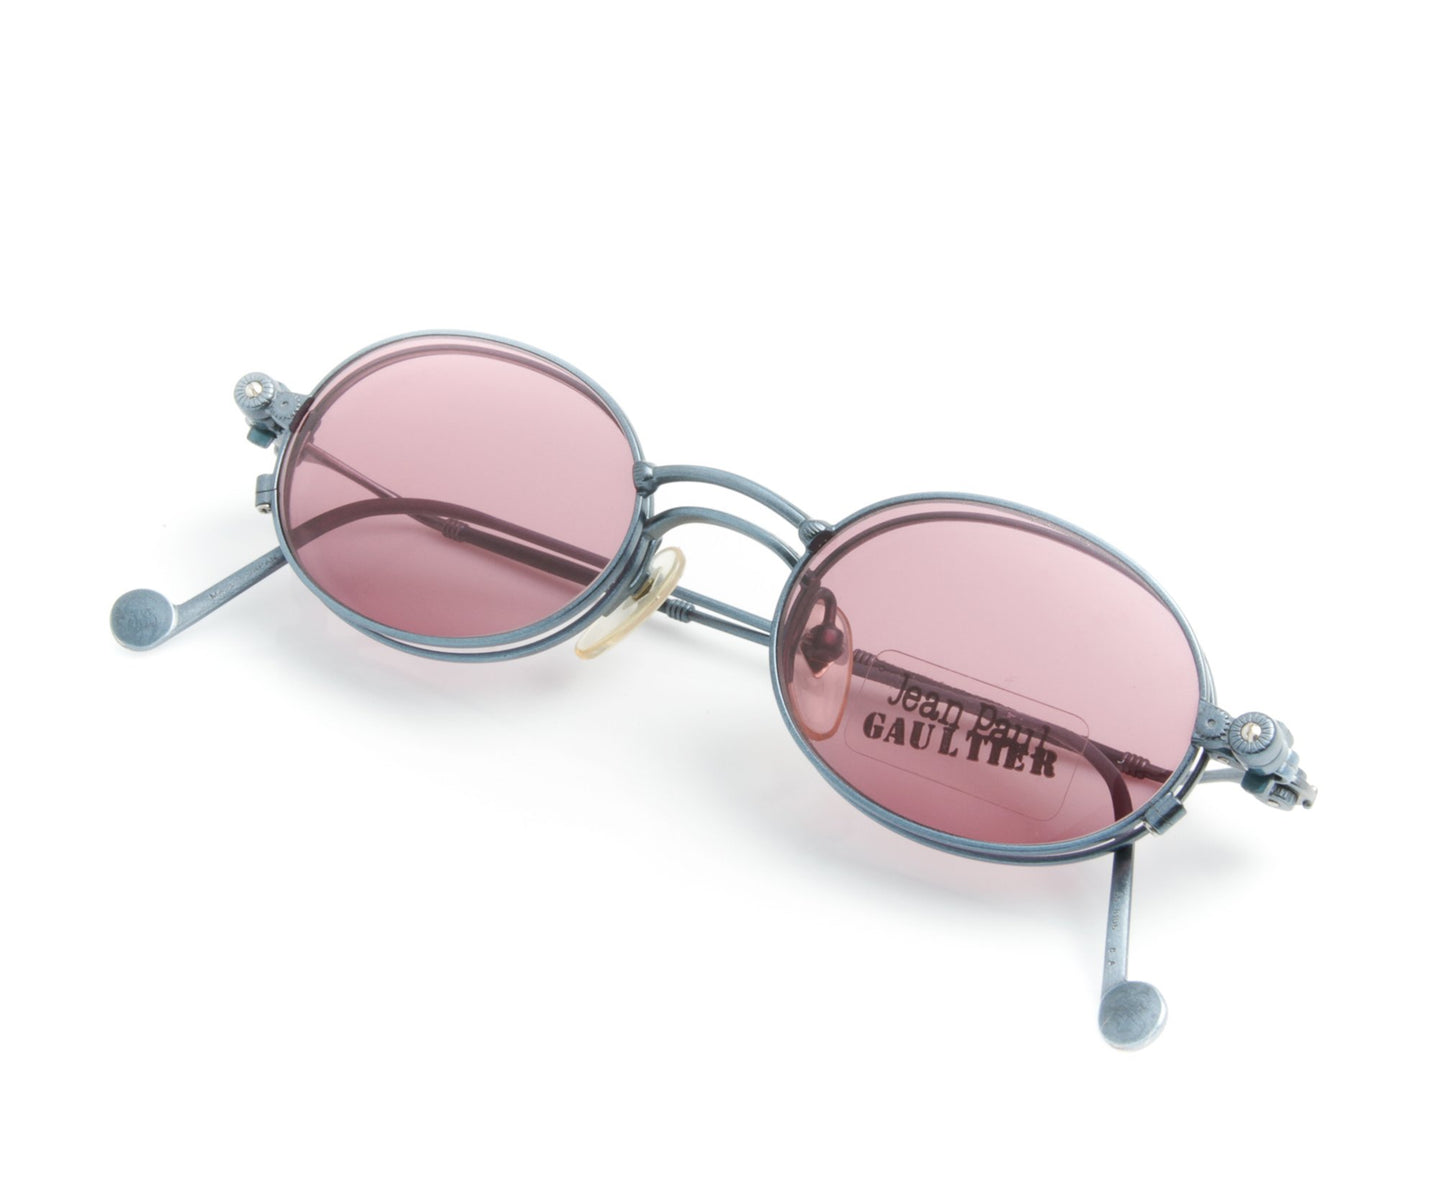 Jean Paul Gaultier 55-8106 8 Thumb, Jean Paul Gaultier , glasses frames, eyeglasses online, eyeglass frames, mens glasses, womens glasses, buy glasses online, designer eyeglasses, vintage sunglasses, retro sunglasses, vintage glasses, sunglass, eyeglass, glasses, lens, vintage frames company, vf